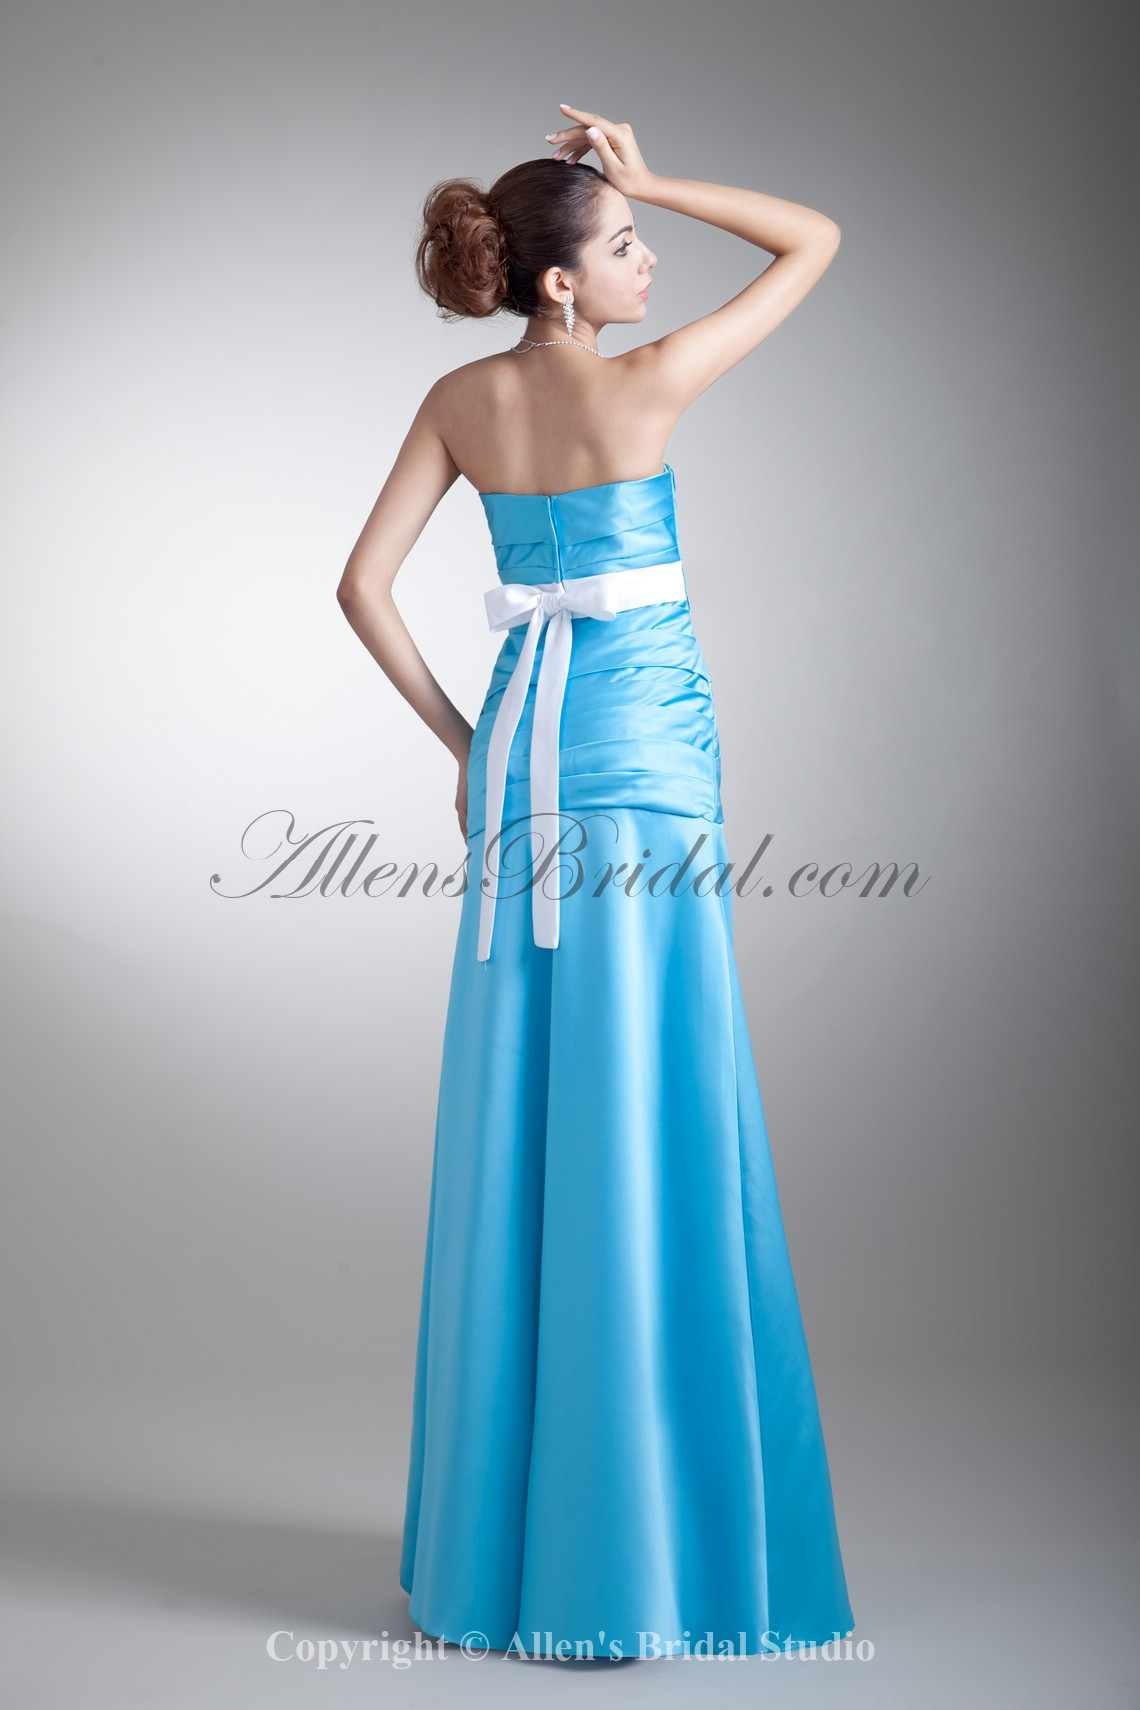 /757-6068/satin-sweetheart-neckline-floor-length-a-line-flowers-prom-dress.jpg